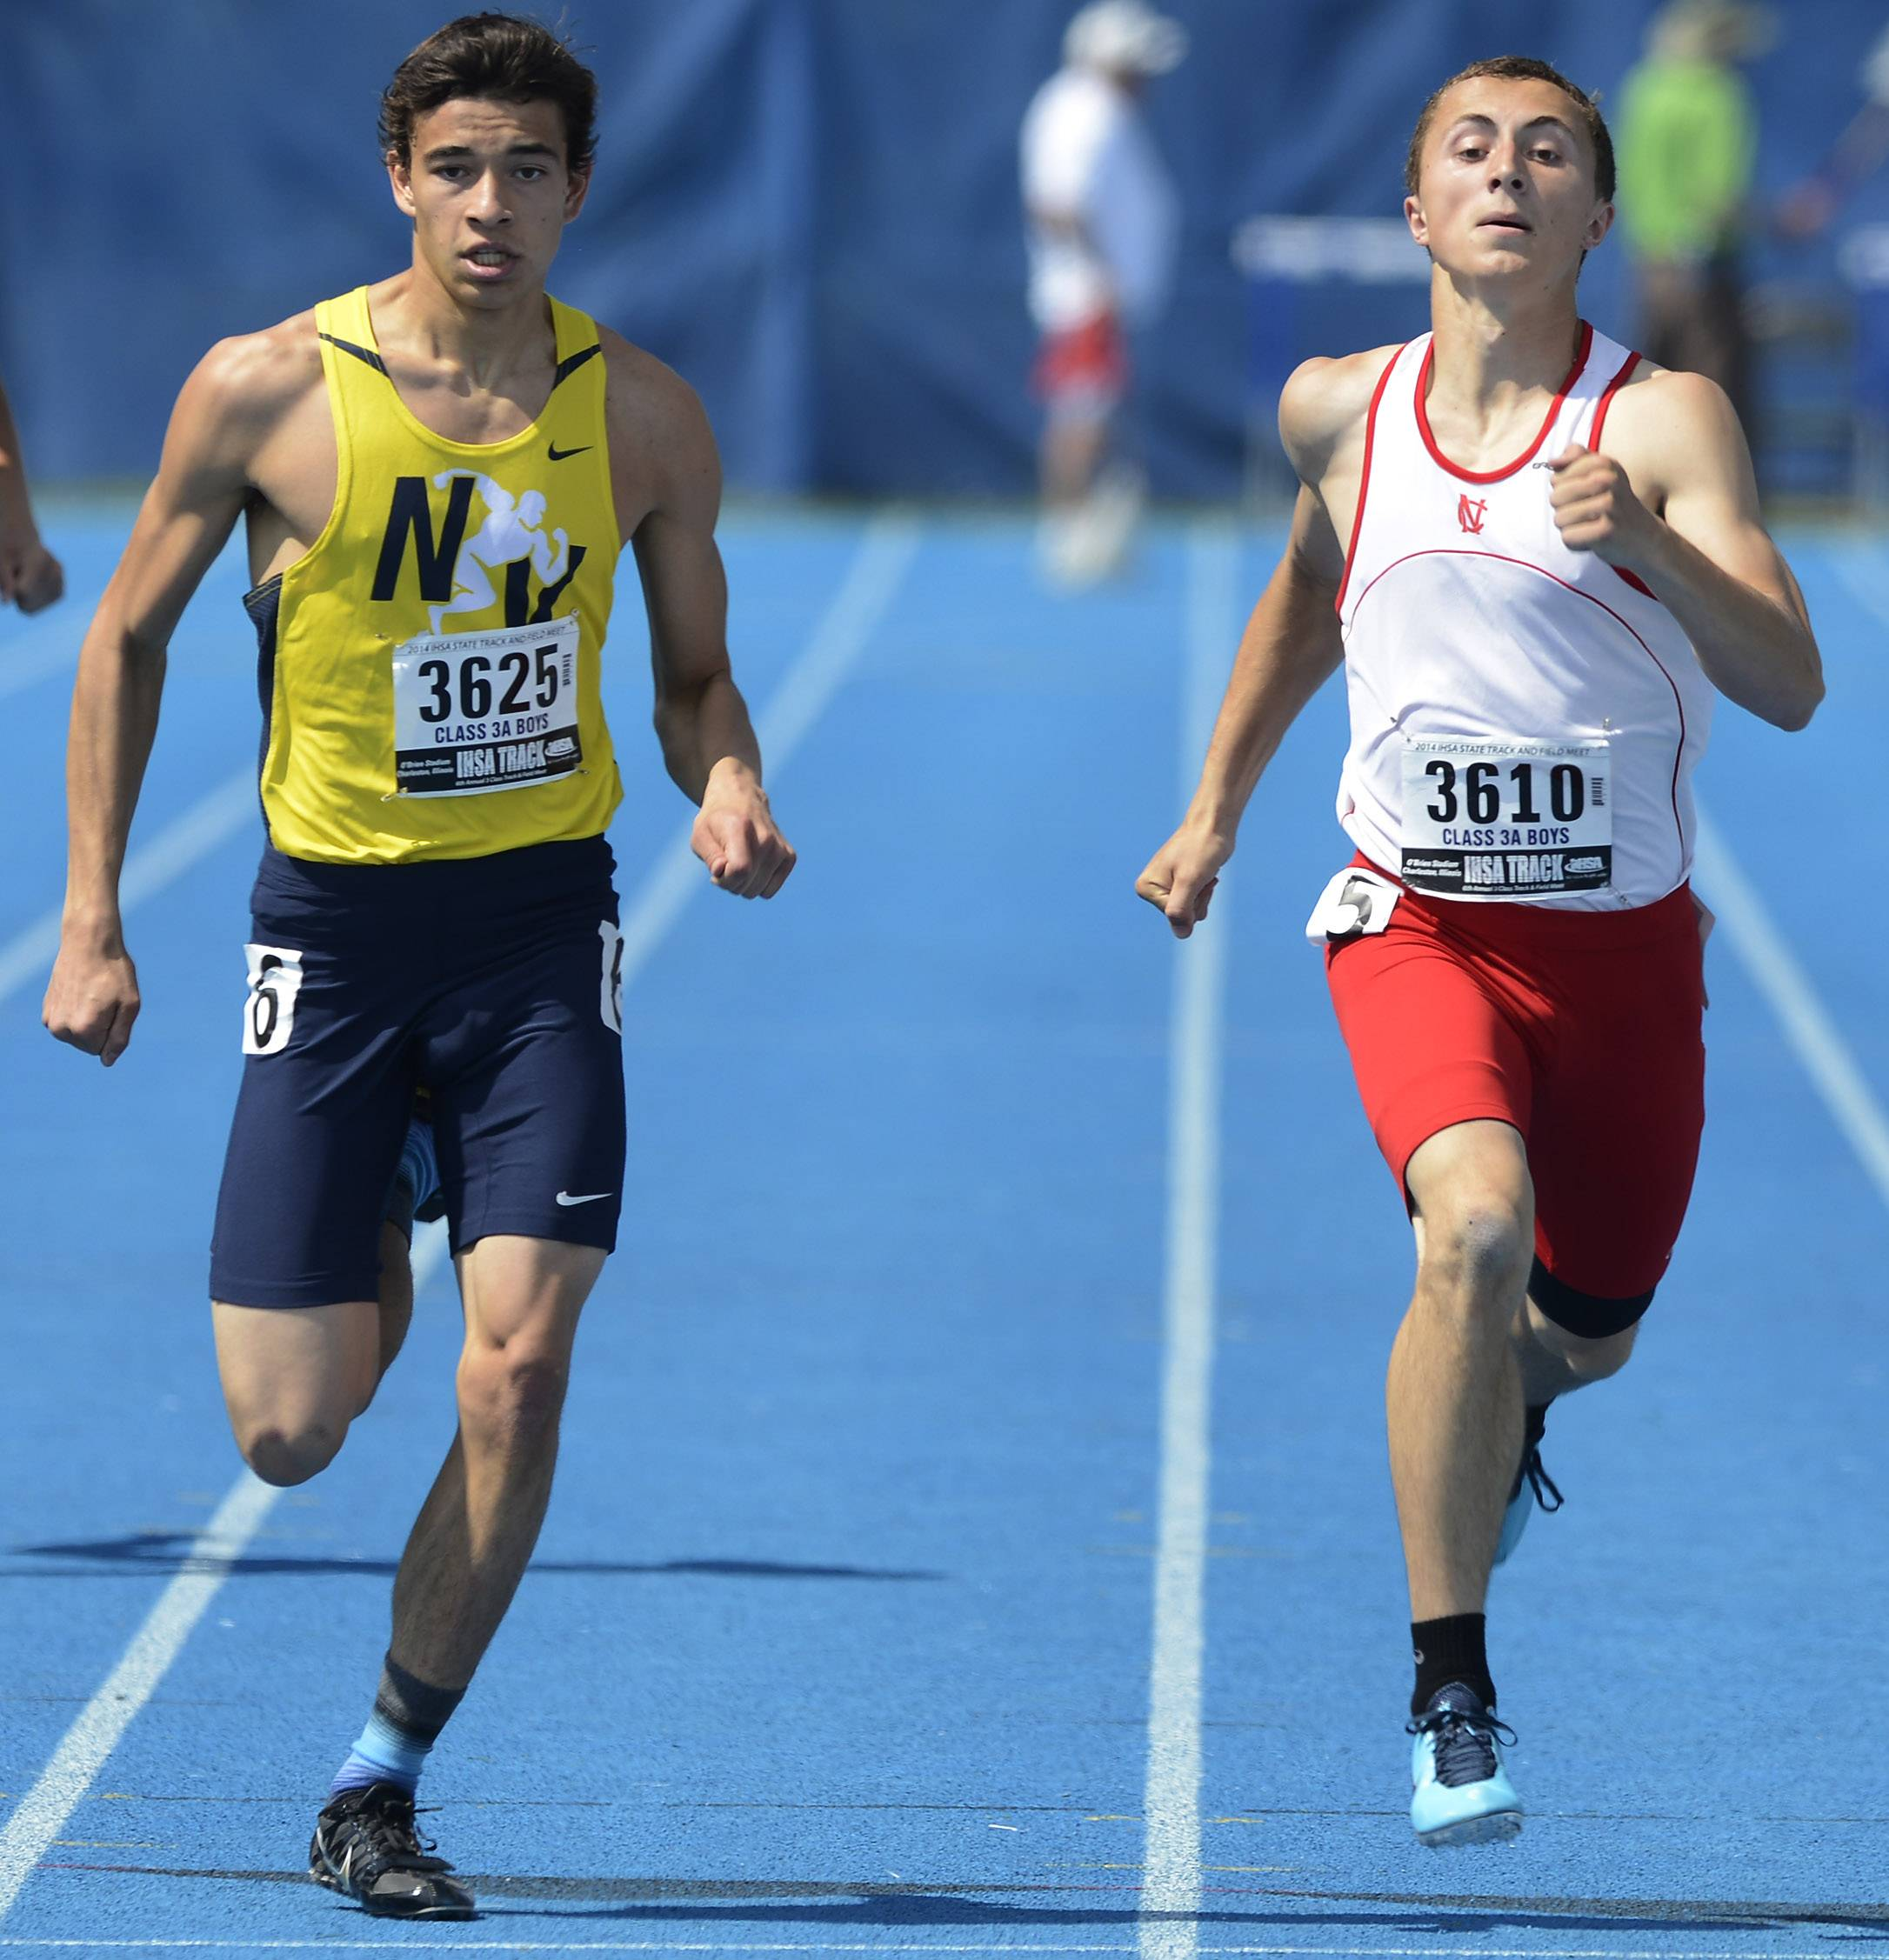 Neuqua Valley's Zac Espinosa, left, and Naperville Central's Sam Bransby run in adjacent lanes in the 400-meter dash during the boys class 3A state track and field preliminaries in Charleston Friday.